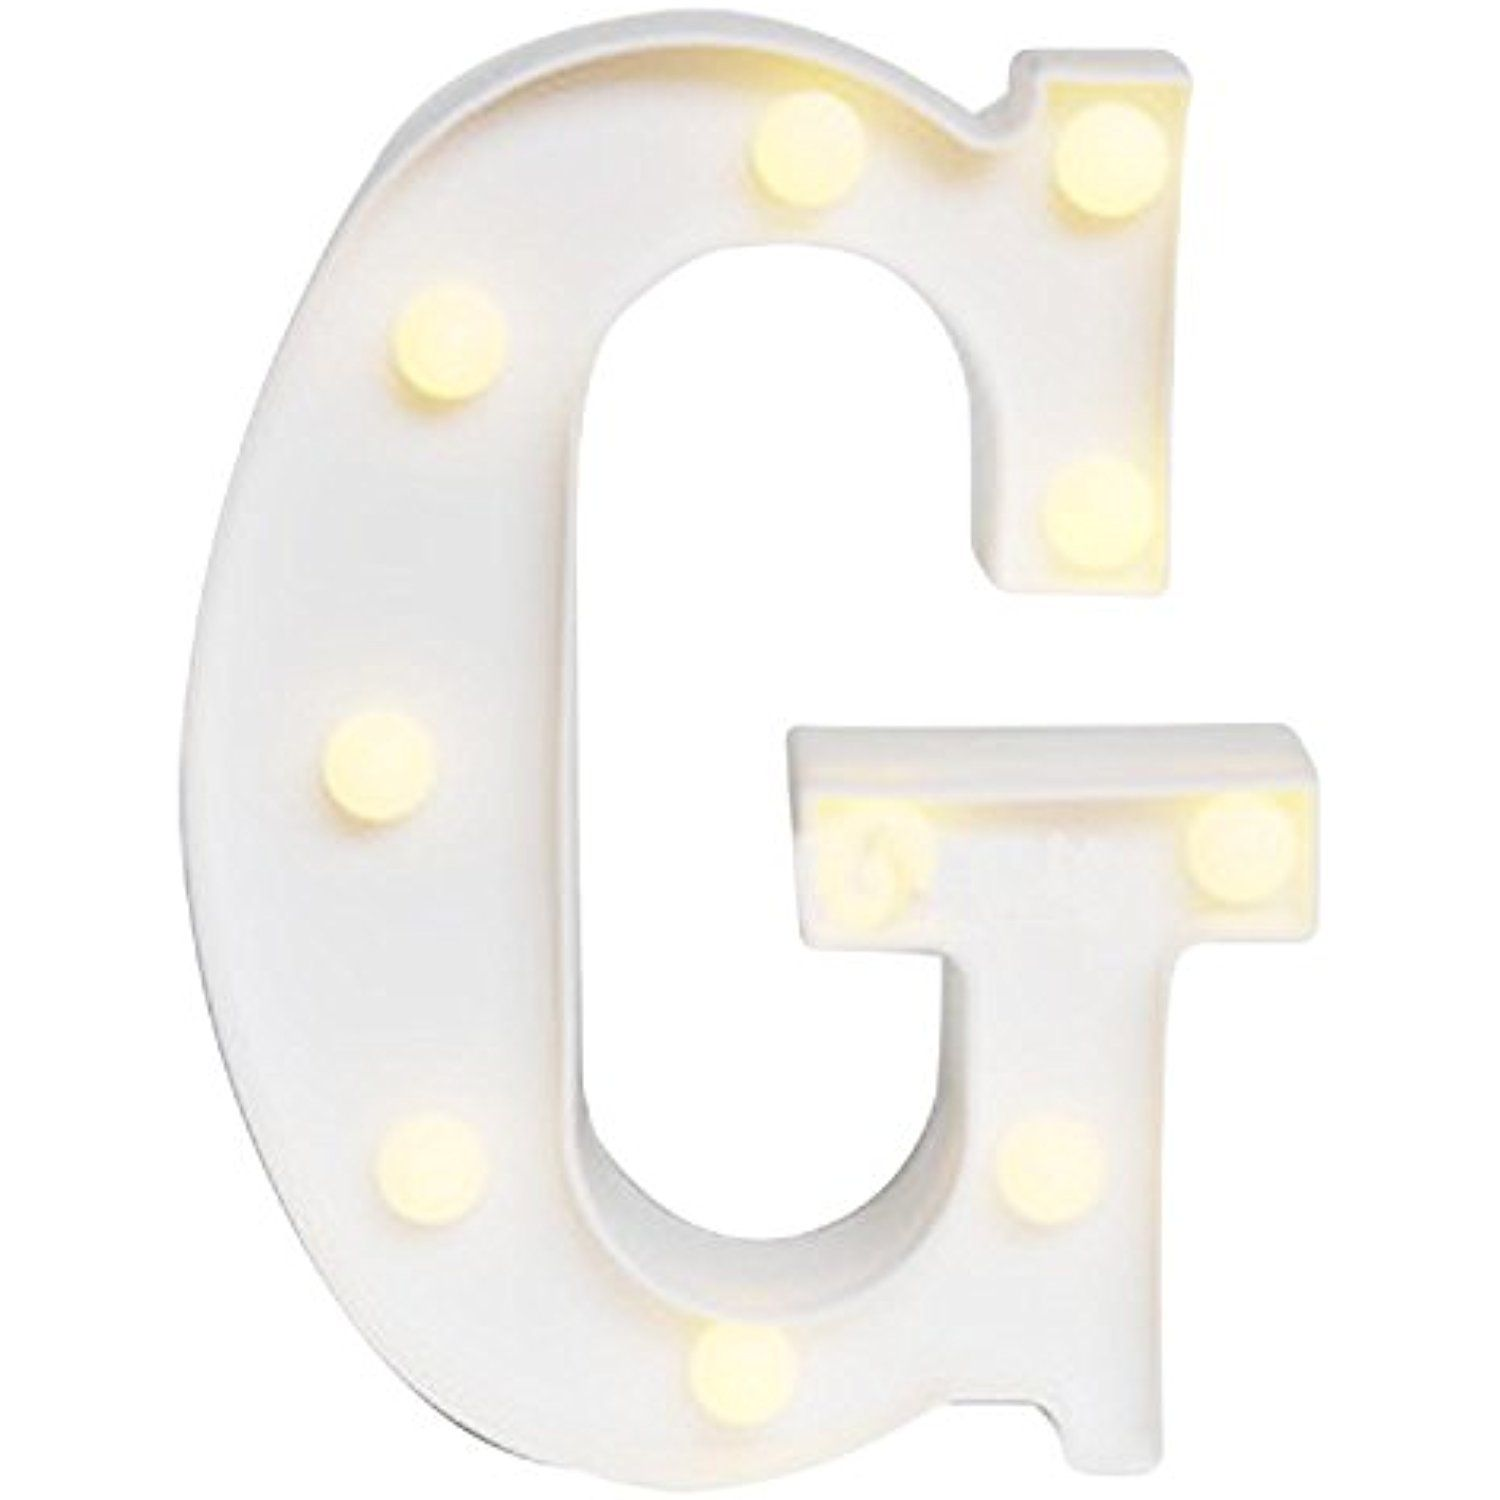 Evokem Decorative DIY LED Letter Lights Led